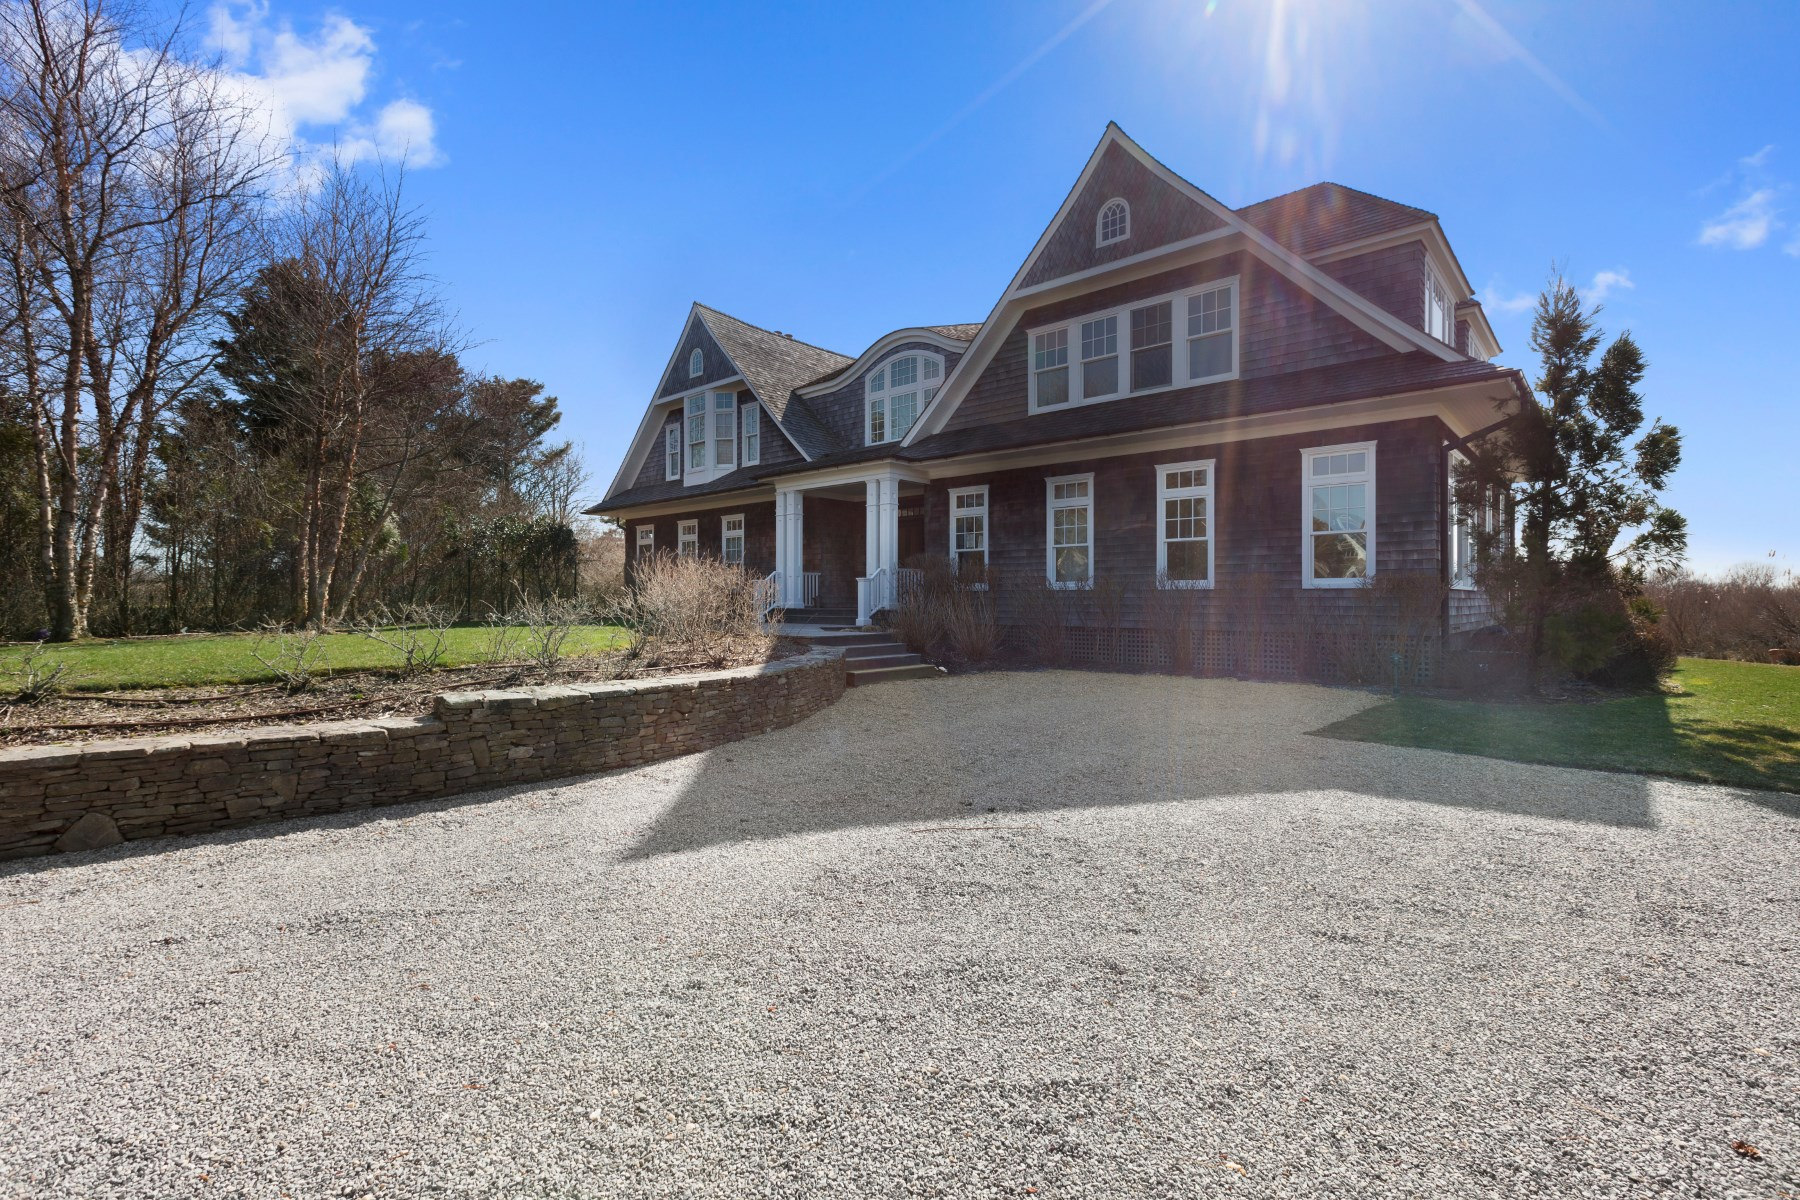 Single Family Home for Rent at Summer Oasis on Mecox Bay Bridgehampton South, Bridgehampton, New York, 11932 United States